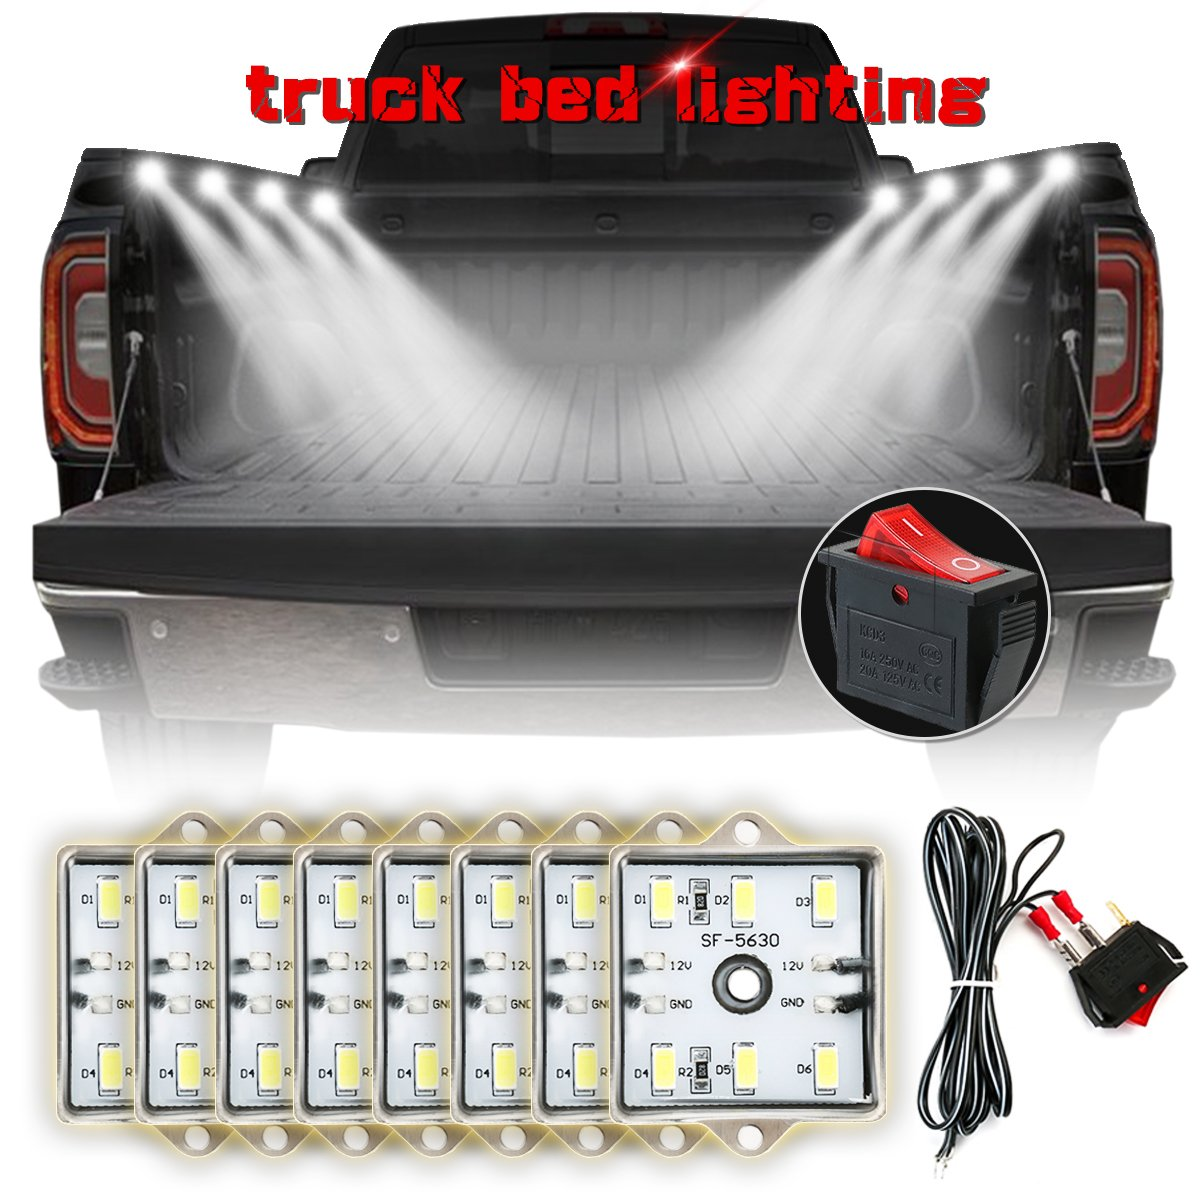 AMBOTHER 8Pcs LED Lights for Truck Bed White Pickup Bed Light with 48 Super Bright LEDs, Waterproof Universal for Dodge Chevrolet Ford Jeep Pickup RV SUV GMC 4336327185